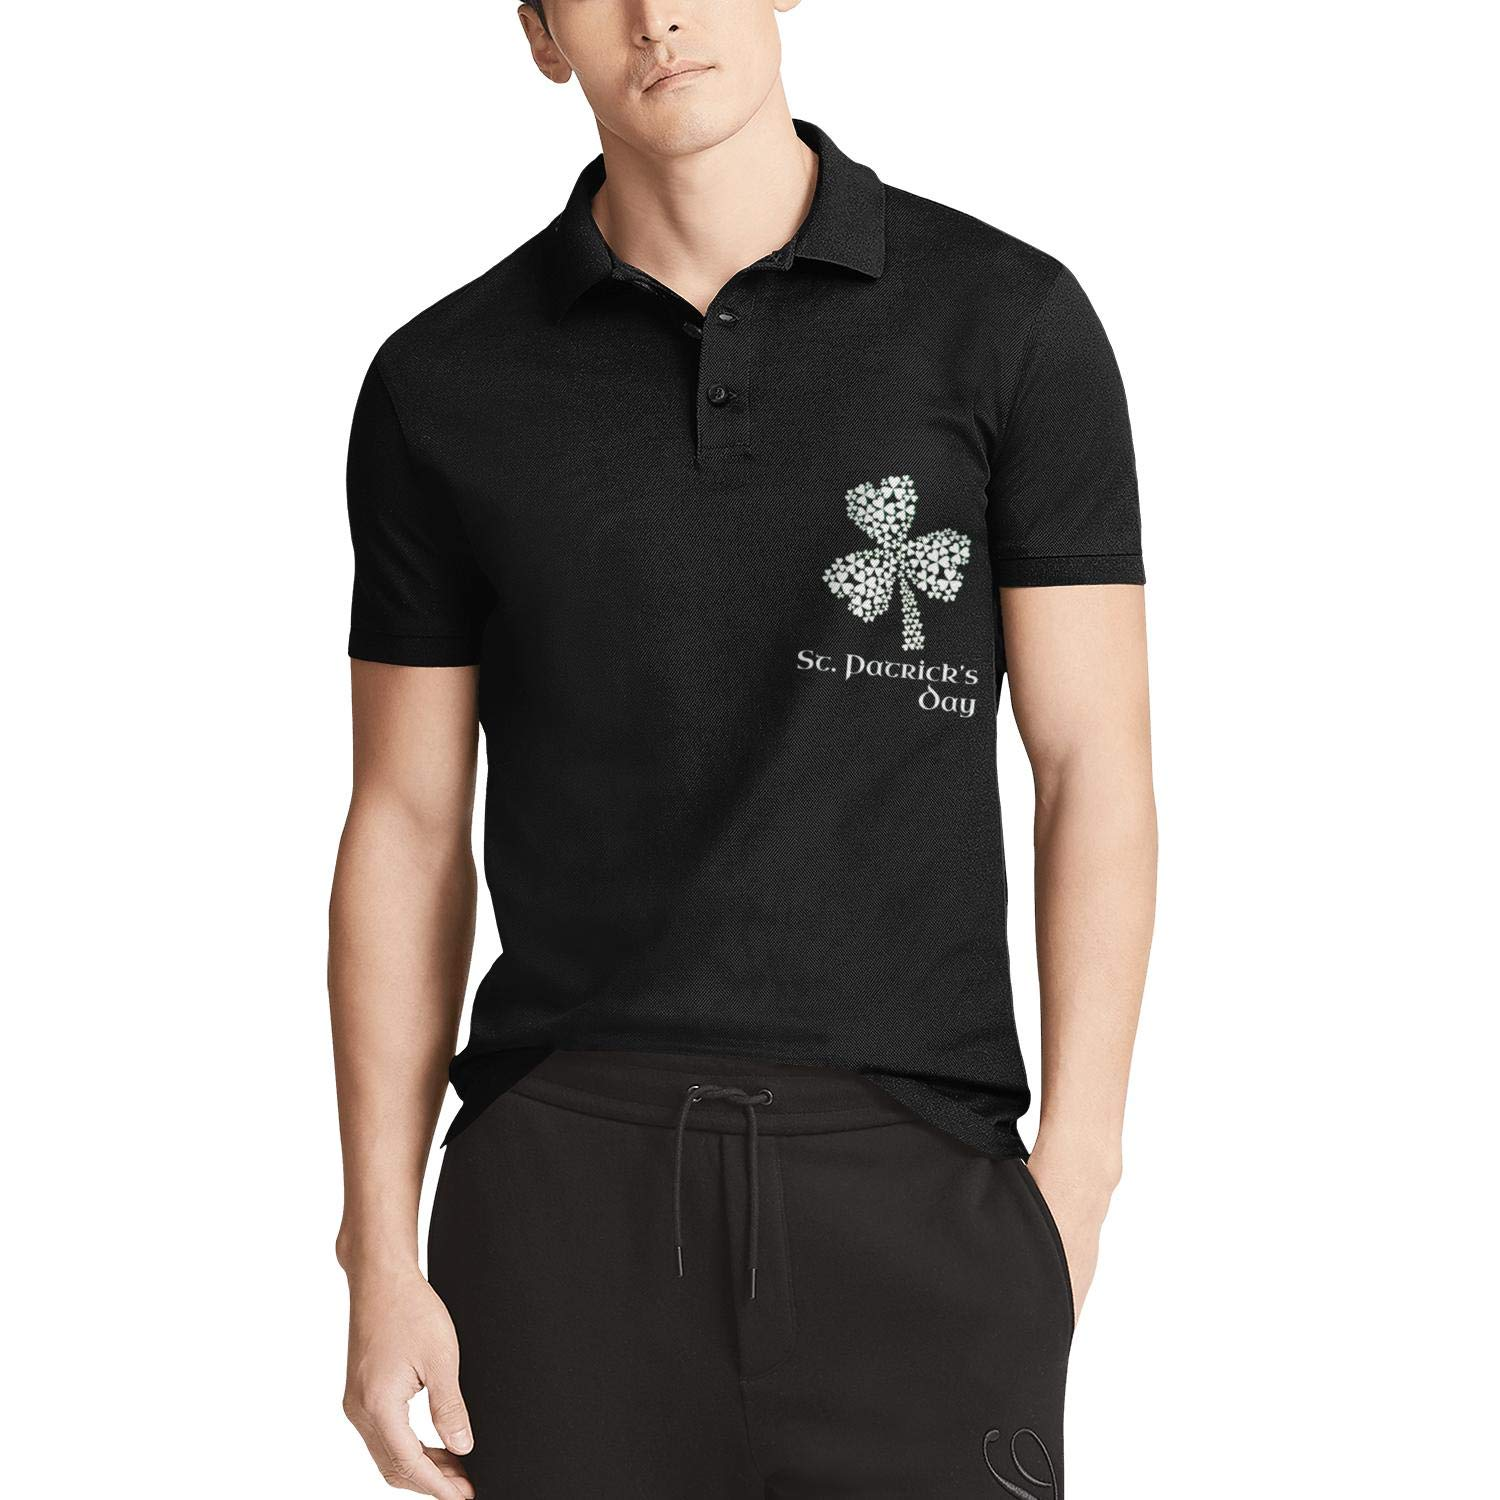 Patricks Day Unique Short Sleeve T-Shirt WYFEN Men Printed Polo Shirt History of St